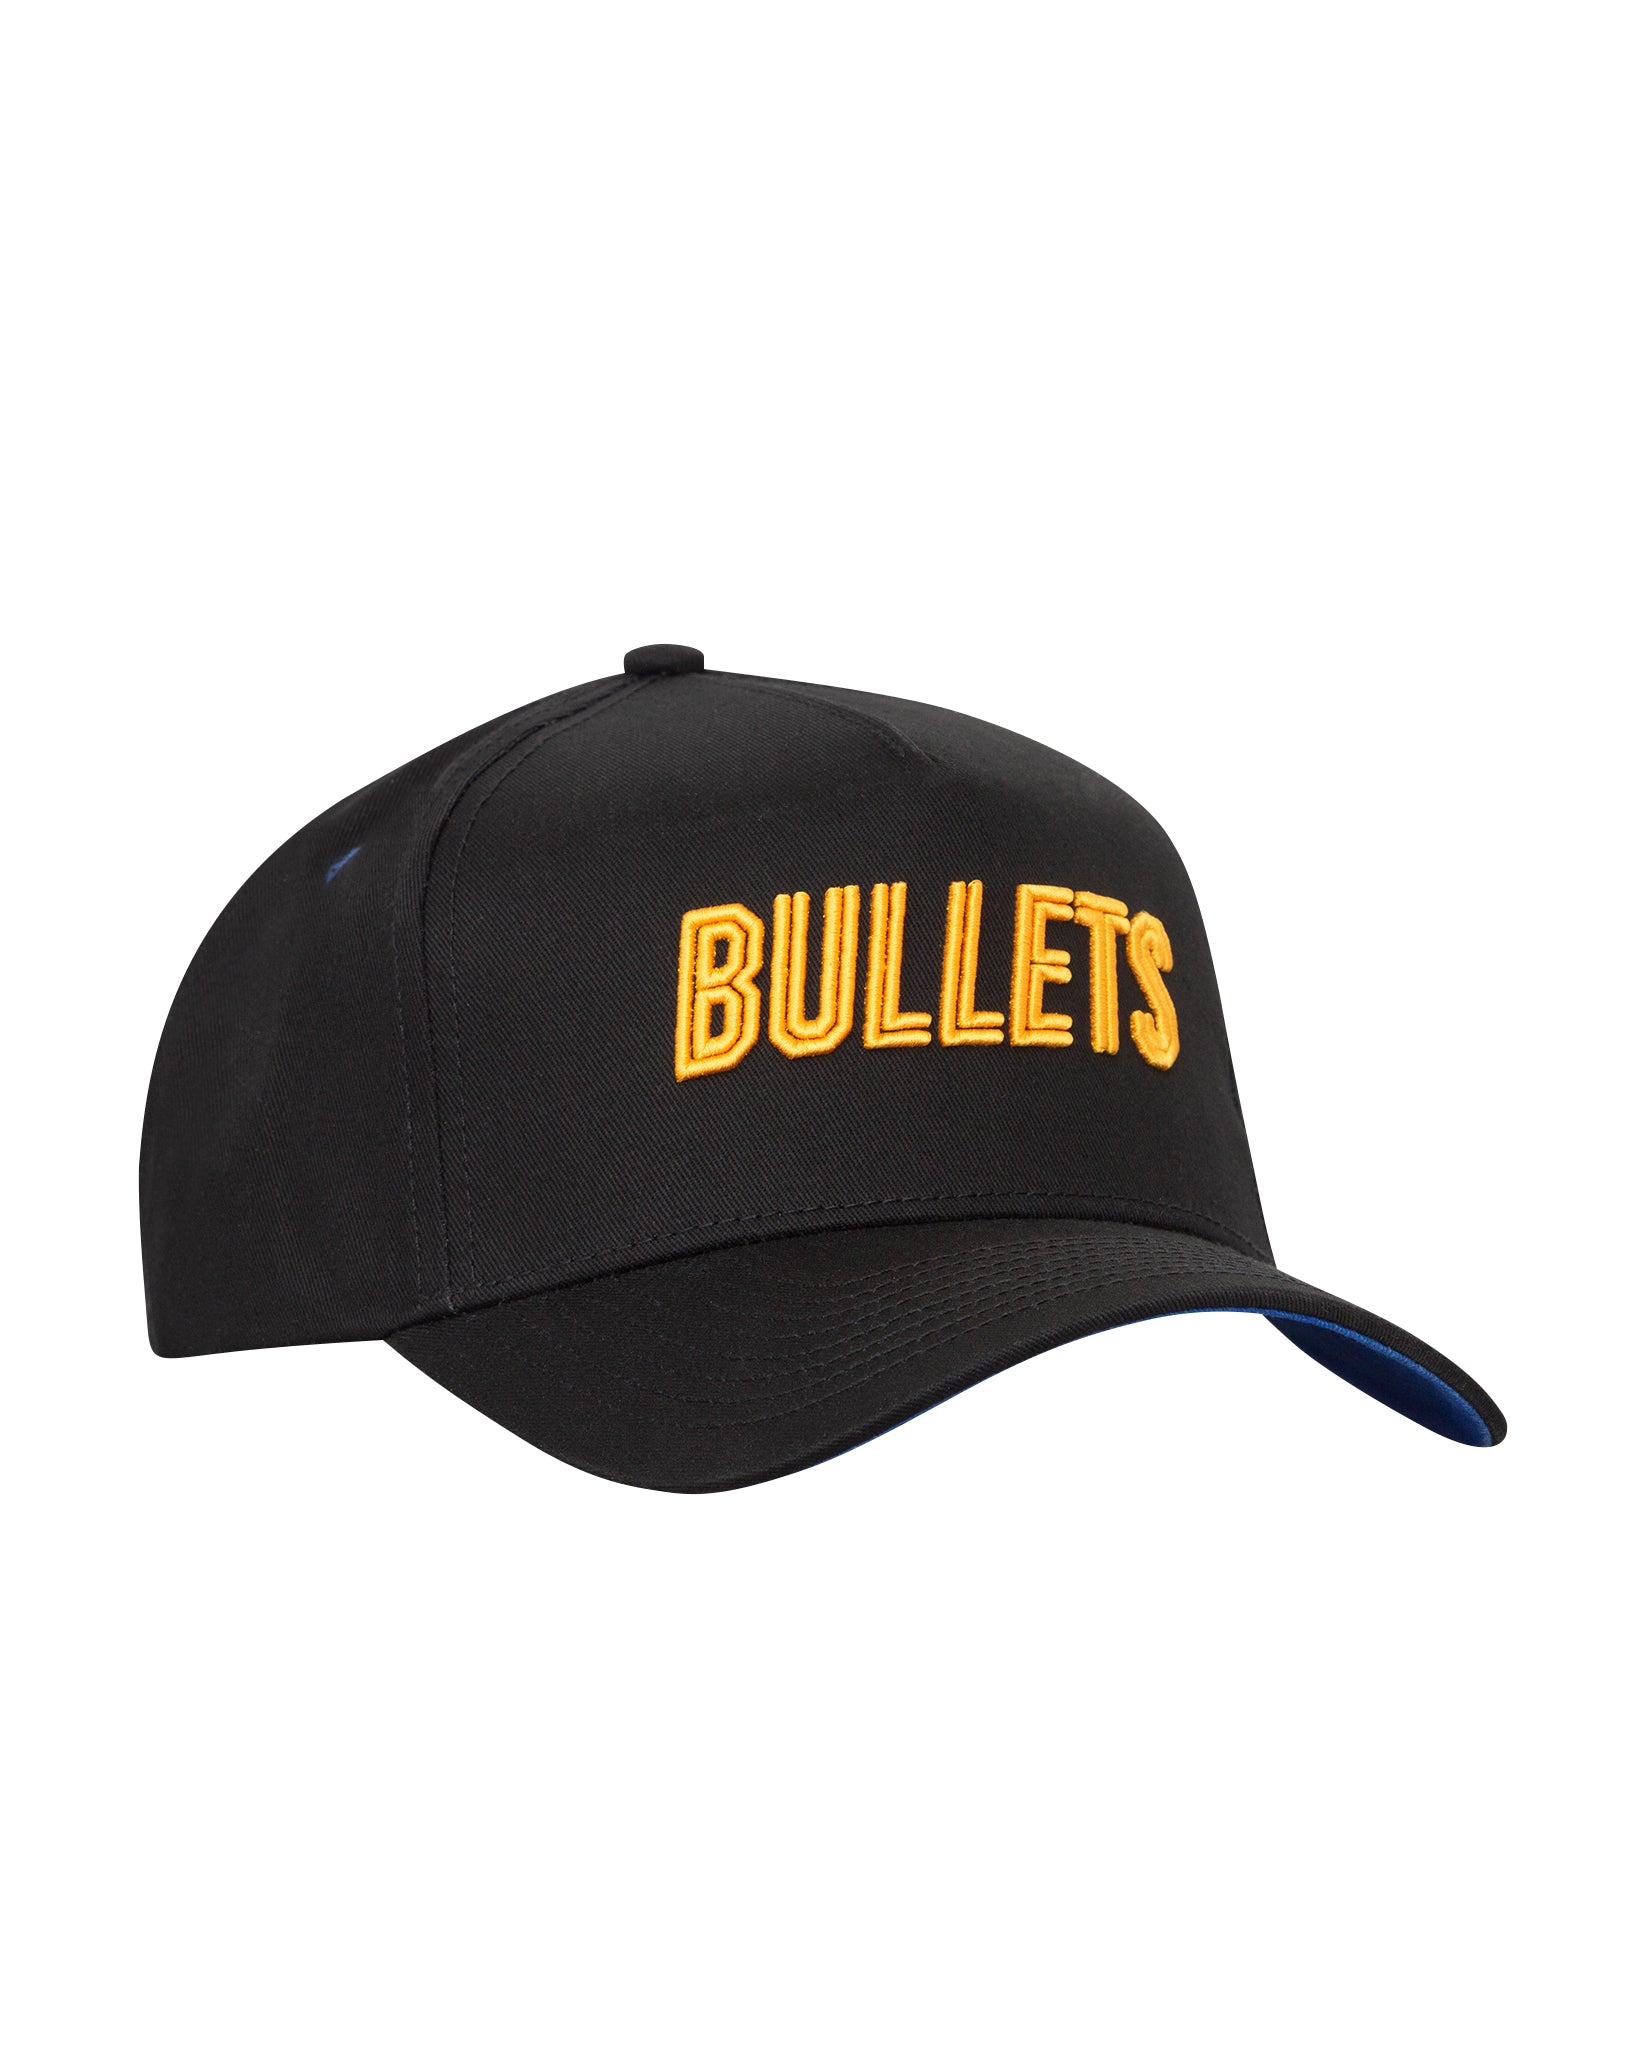 Brisbane Bullets Original Wordmark A Frame Cap